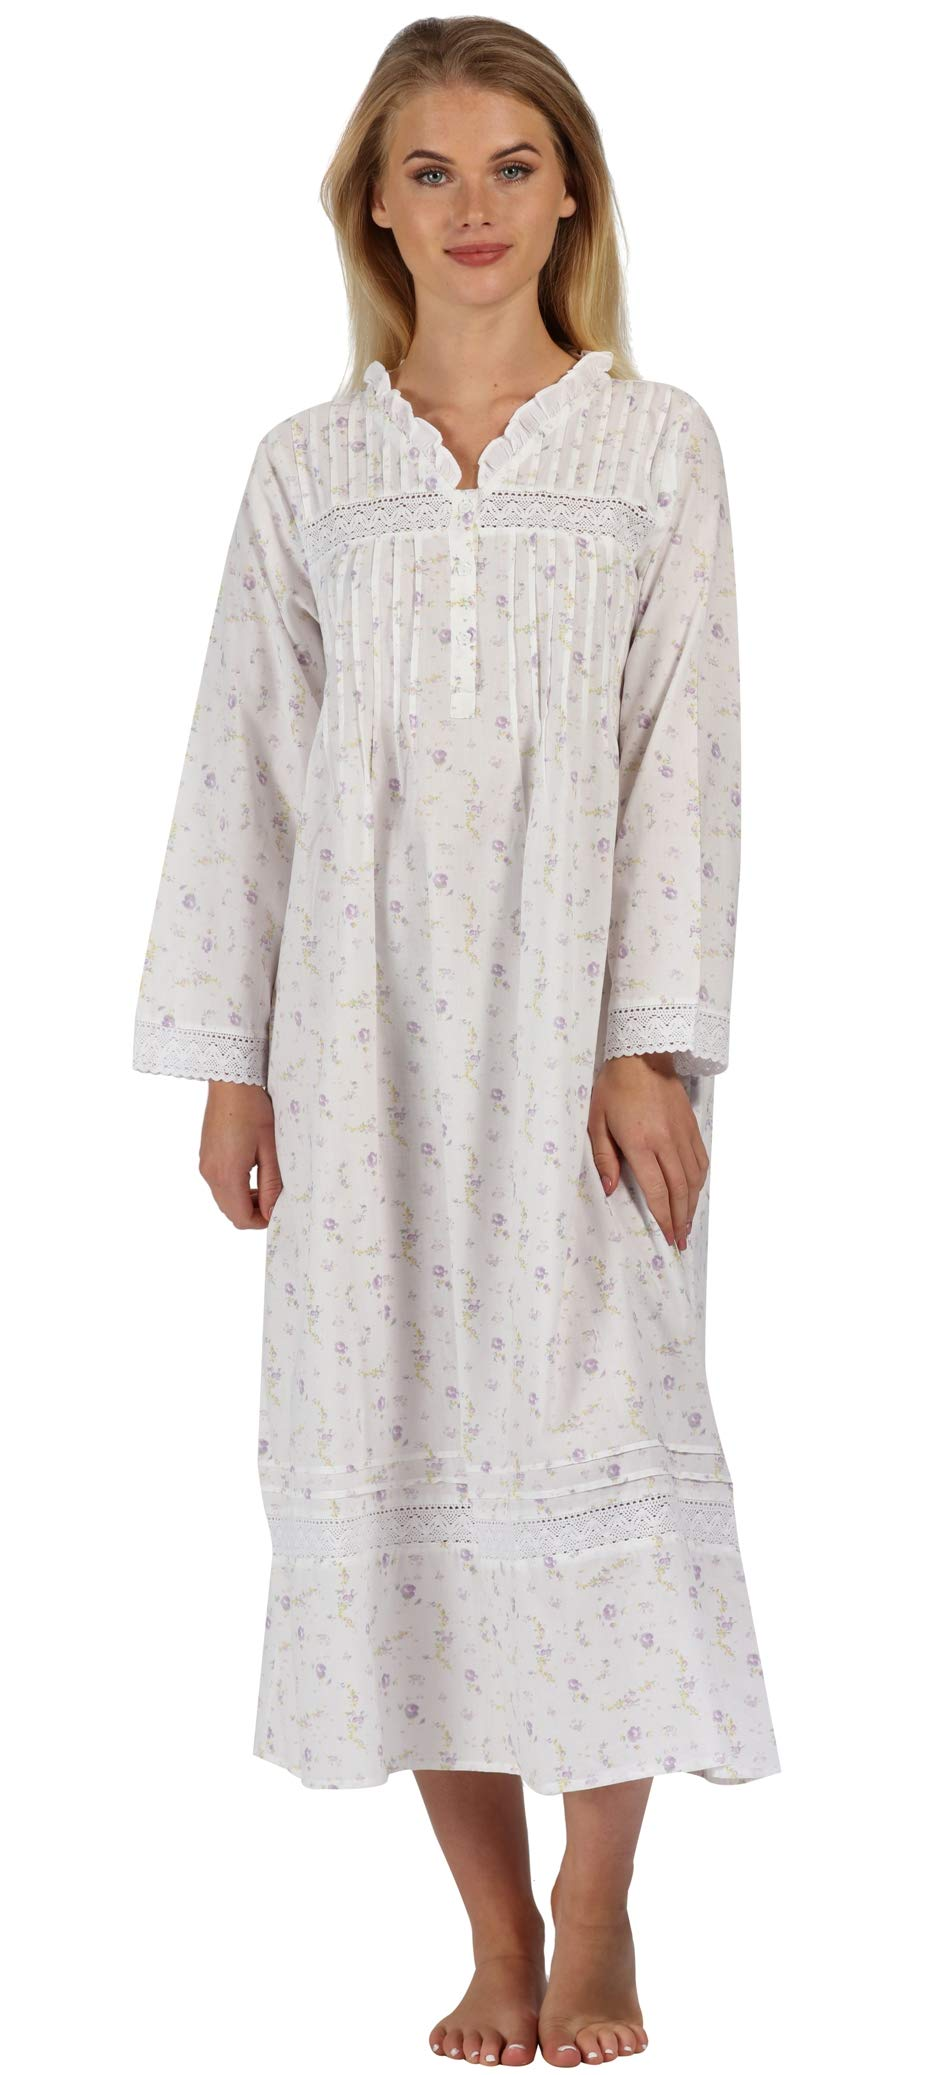 The 1 for U 100% Cotton Nightgown Vintage Design - Annabelle